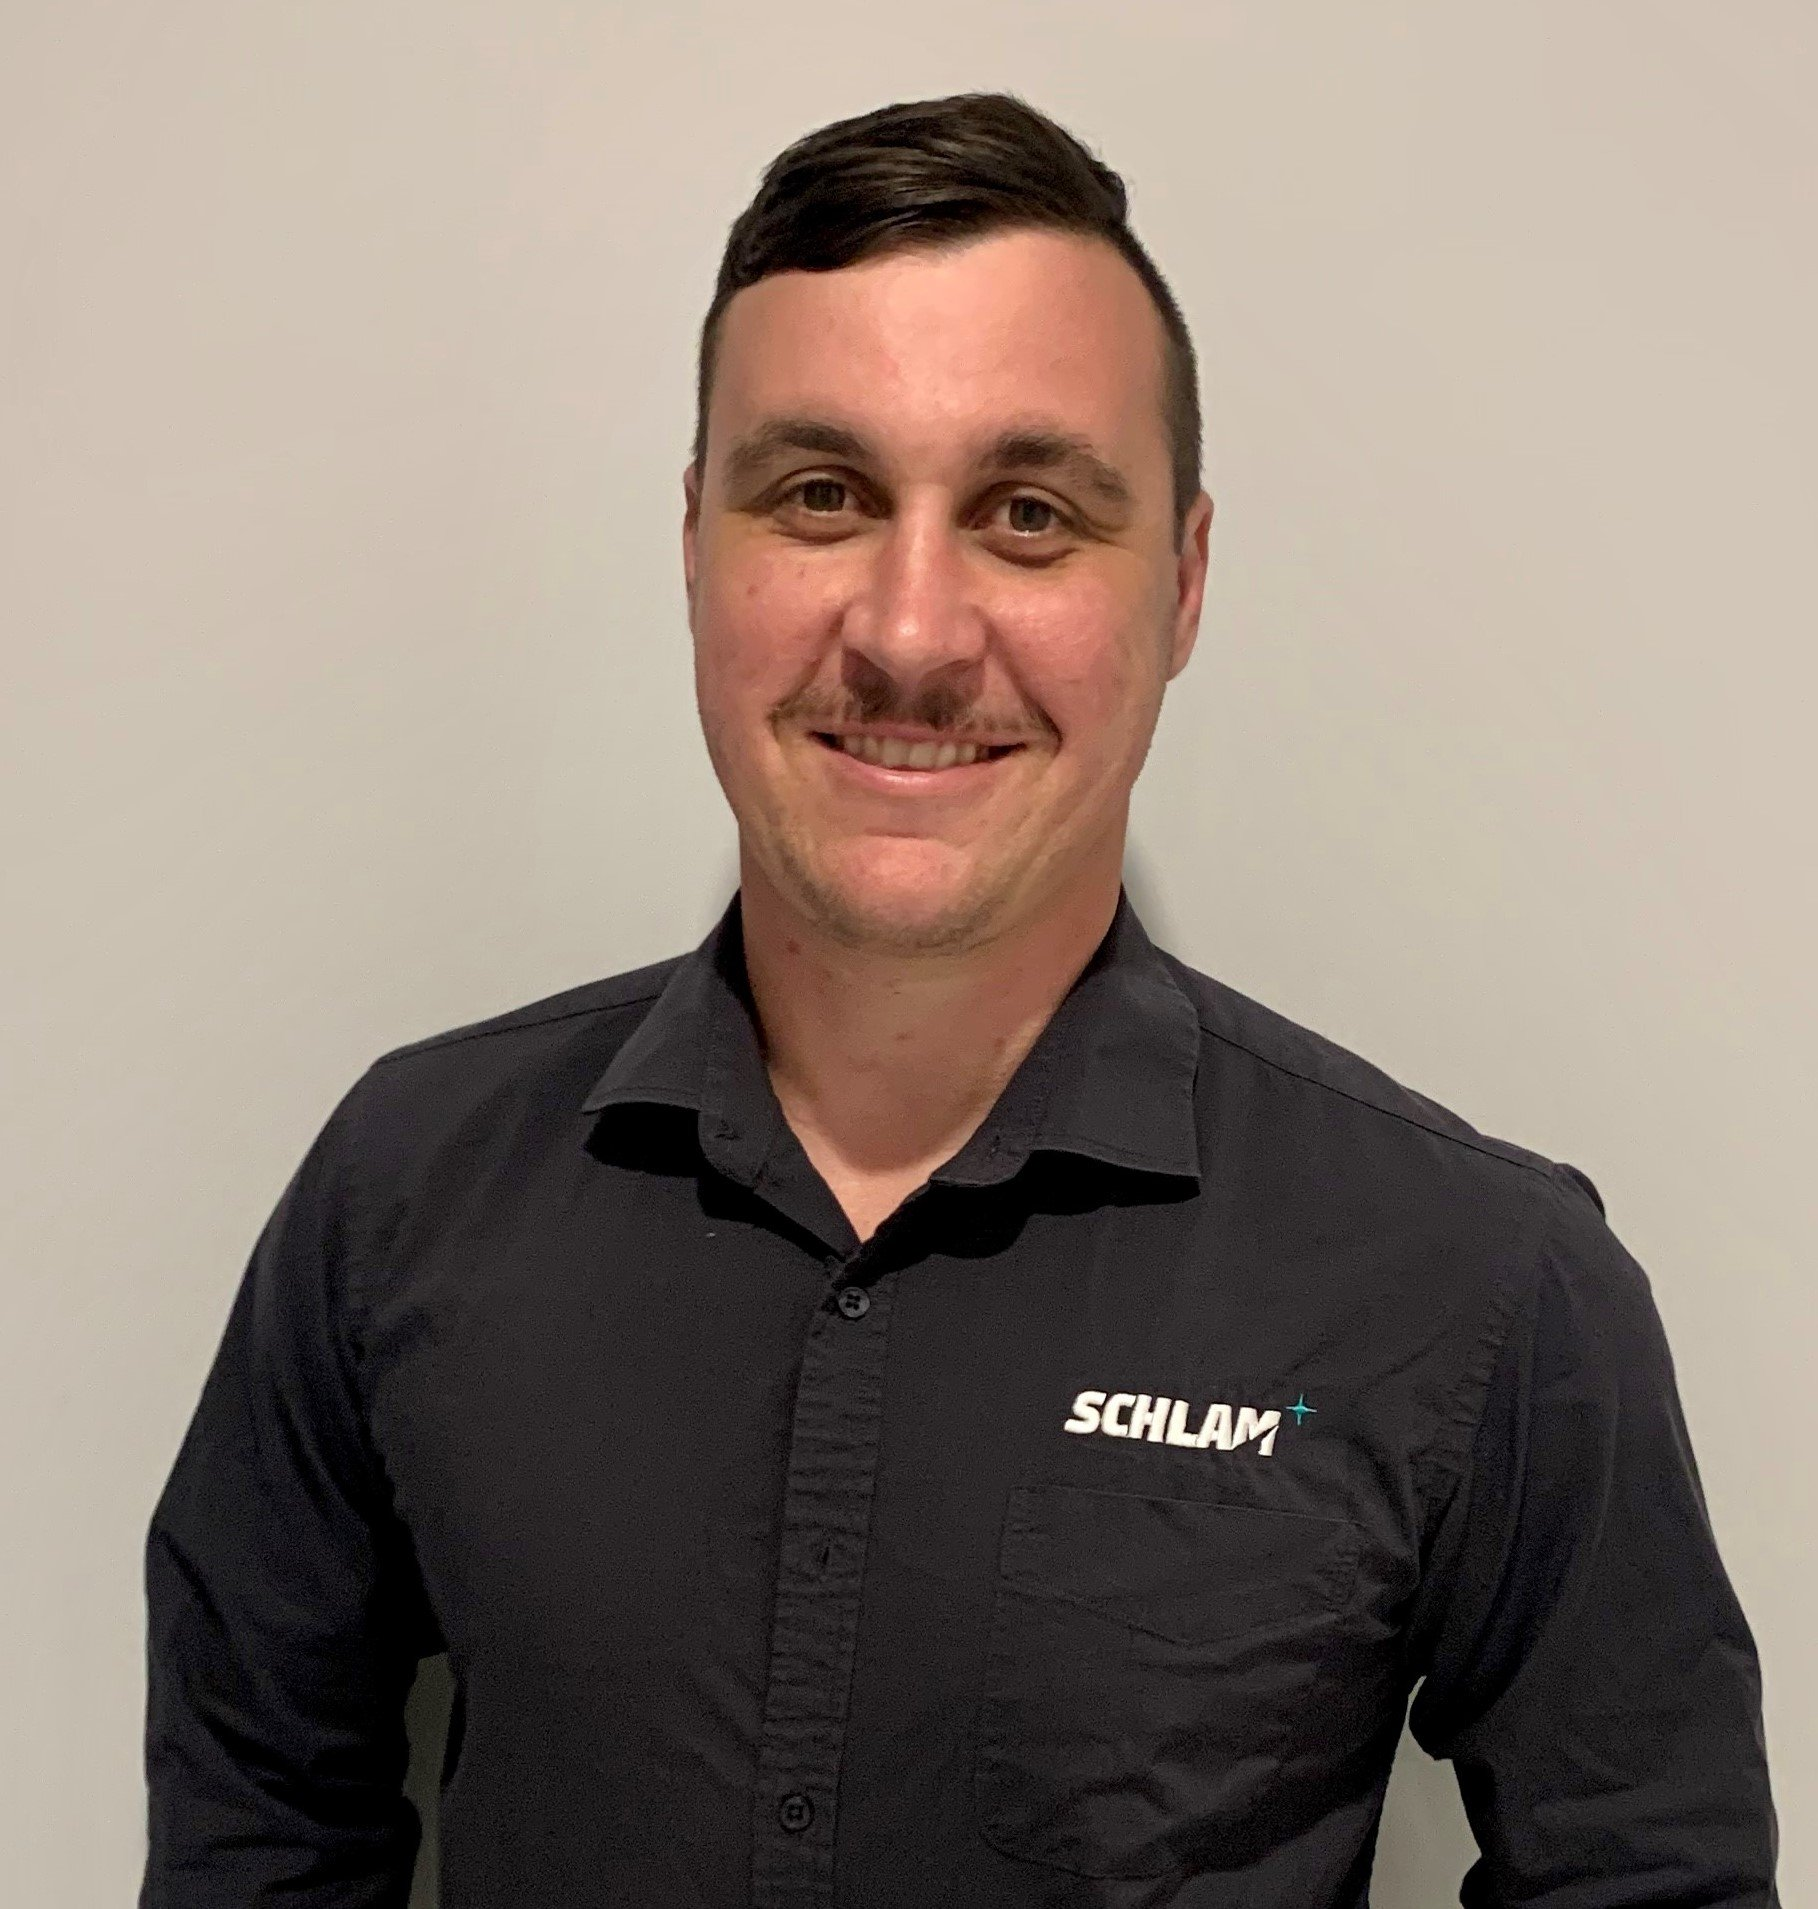 Grant Savell Schlam Technical Service Manager-East